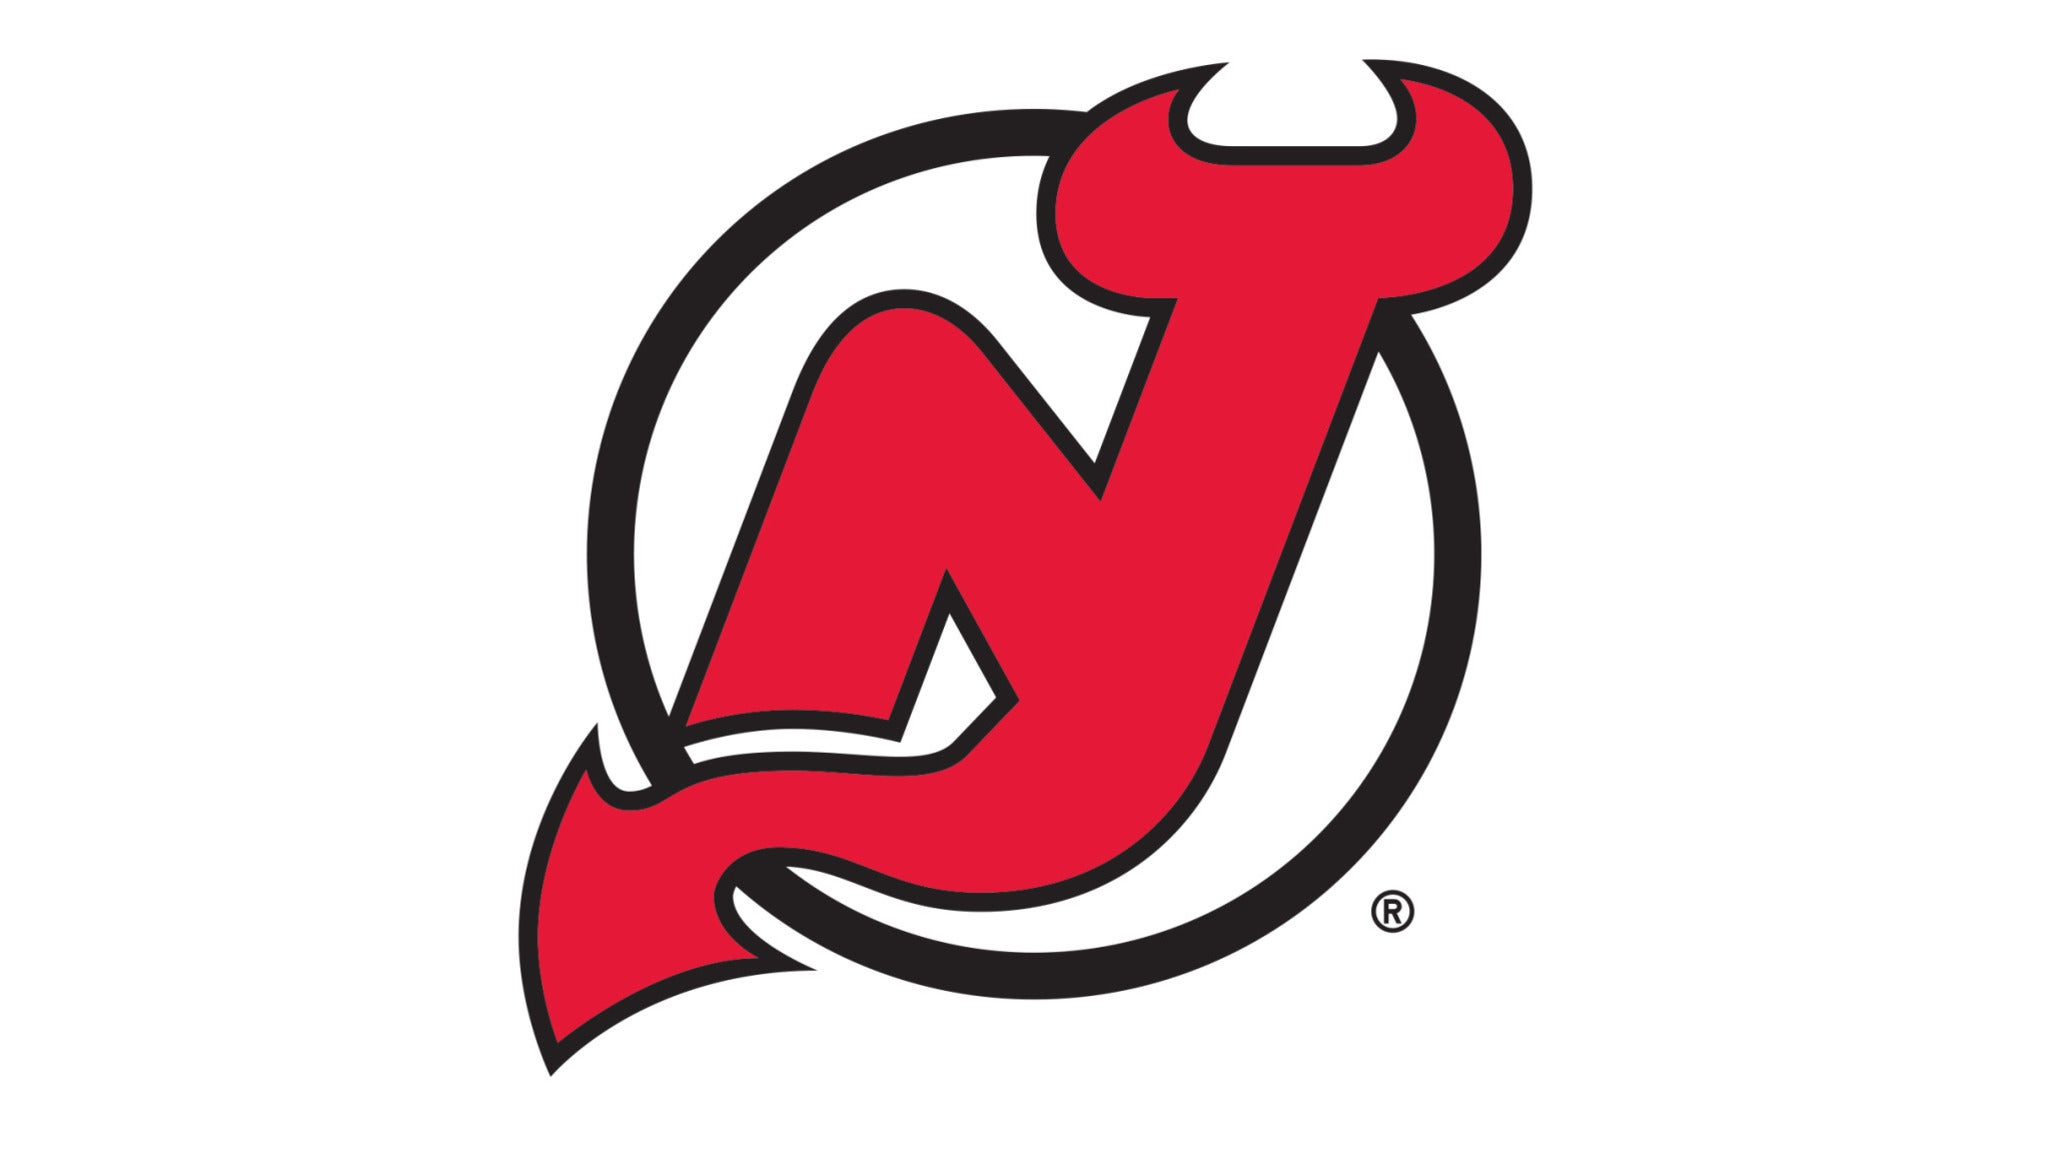 New Jersey Devils vs. Calgary Flames at Prudential Center - Newark, NJ 07102